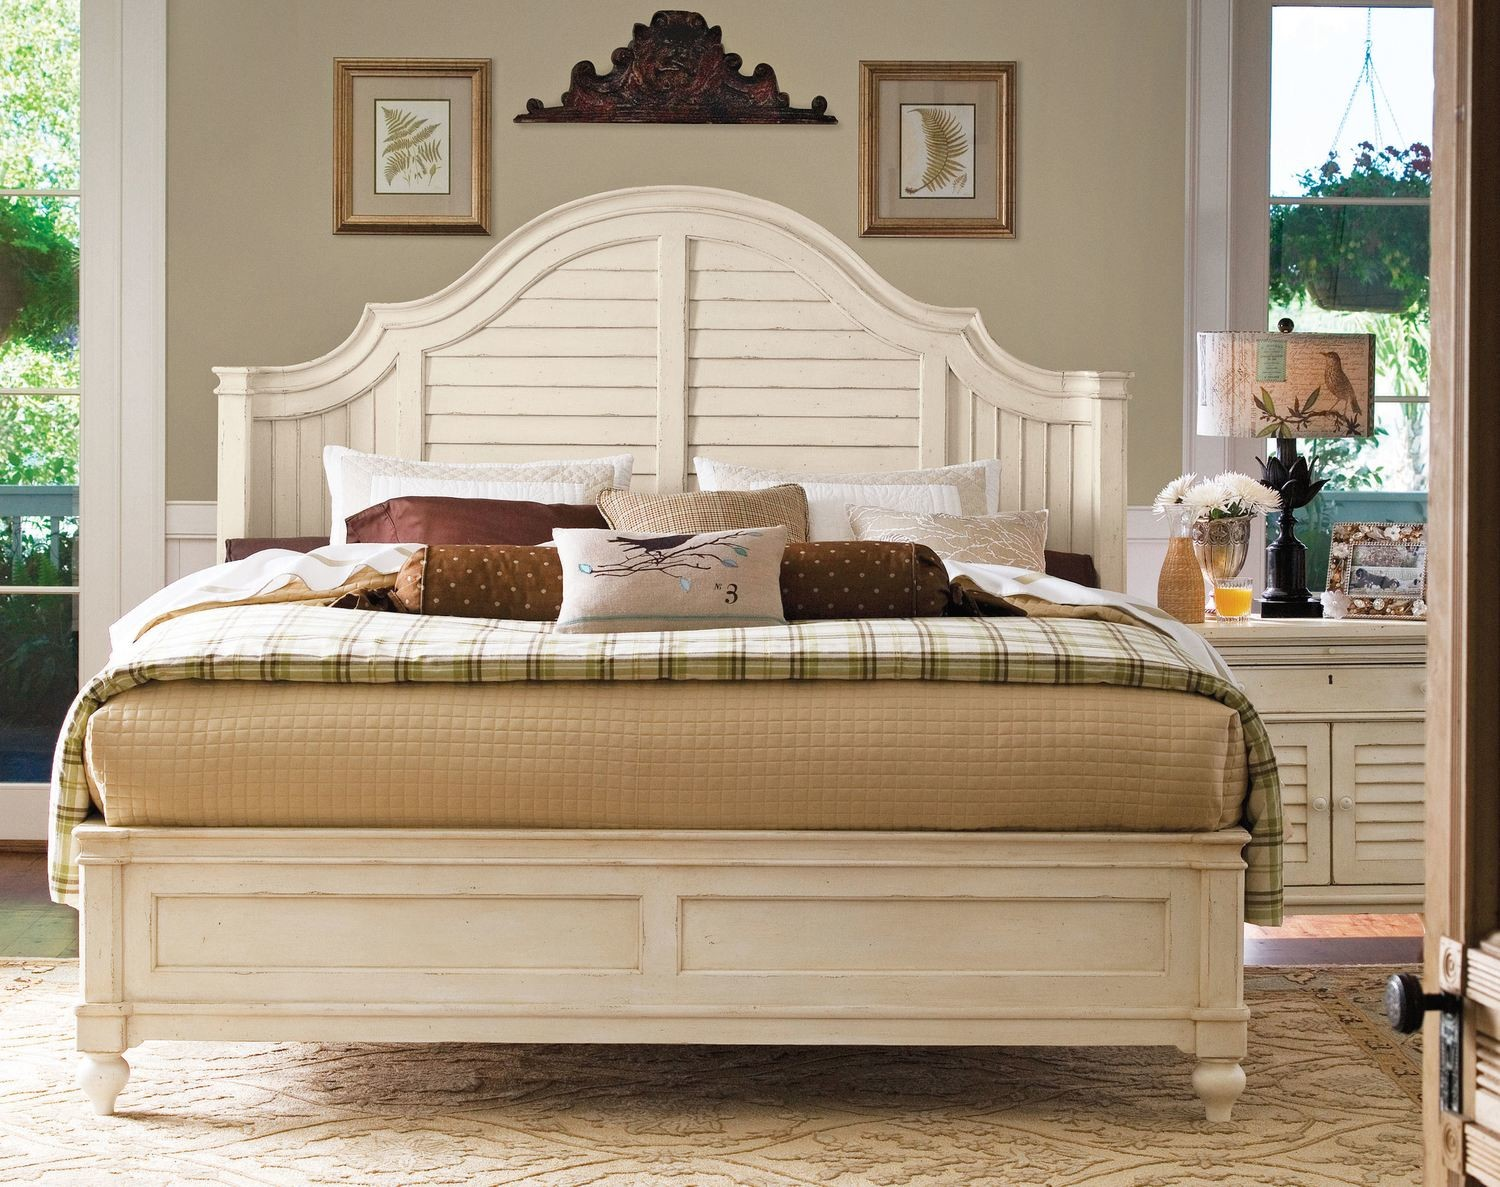 Magnolia SHELTER BED COLLECTION Linen